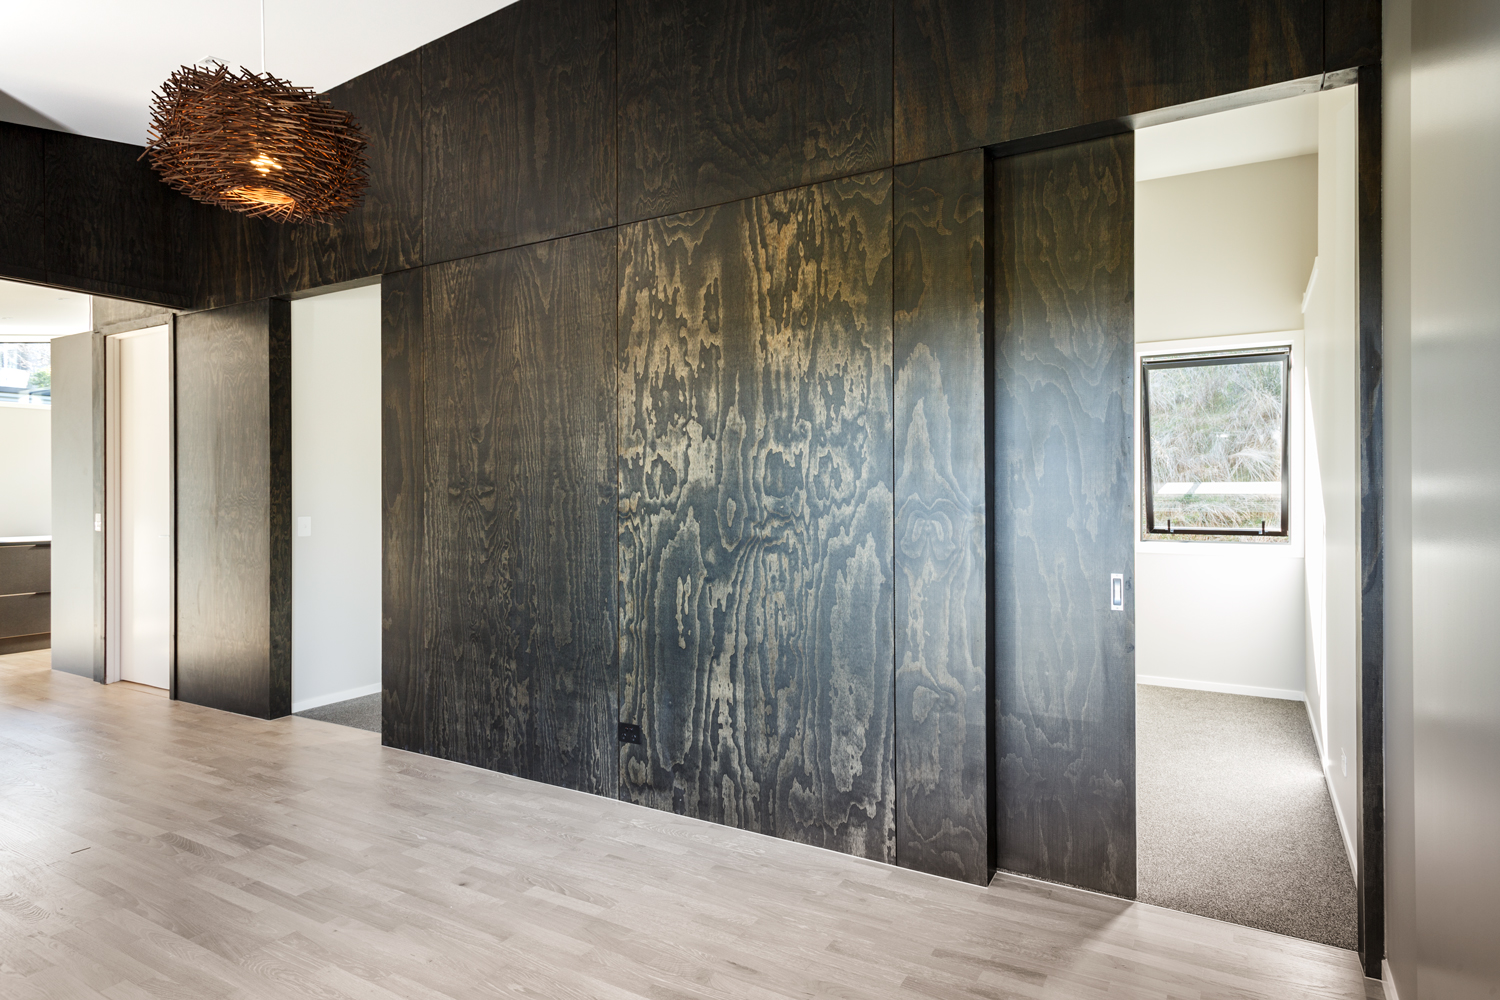 Plyplay Prefinished Interior Plywood Panelsa Striking Feature Wall In Black Satin Plywood Plyplay Prefinished Interior Plywood Panels